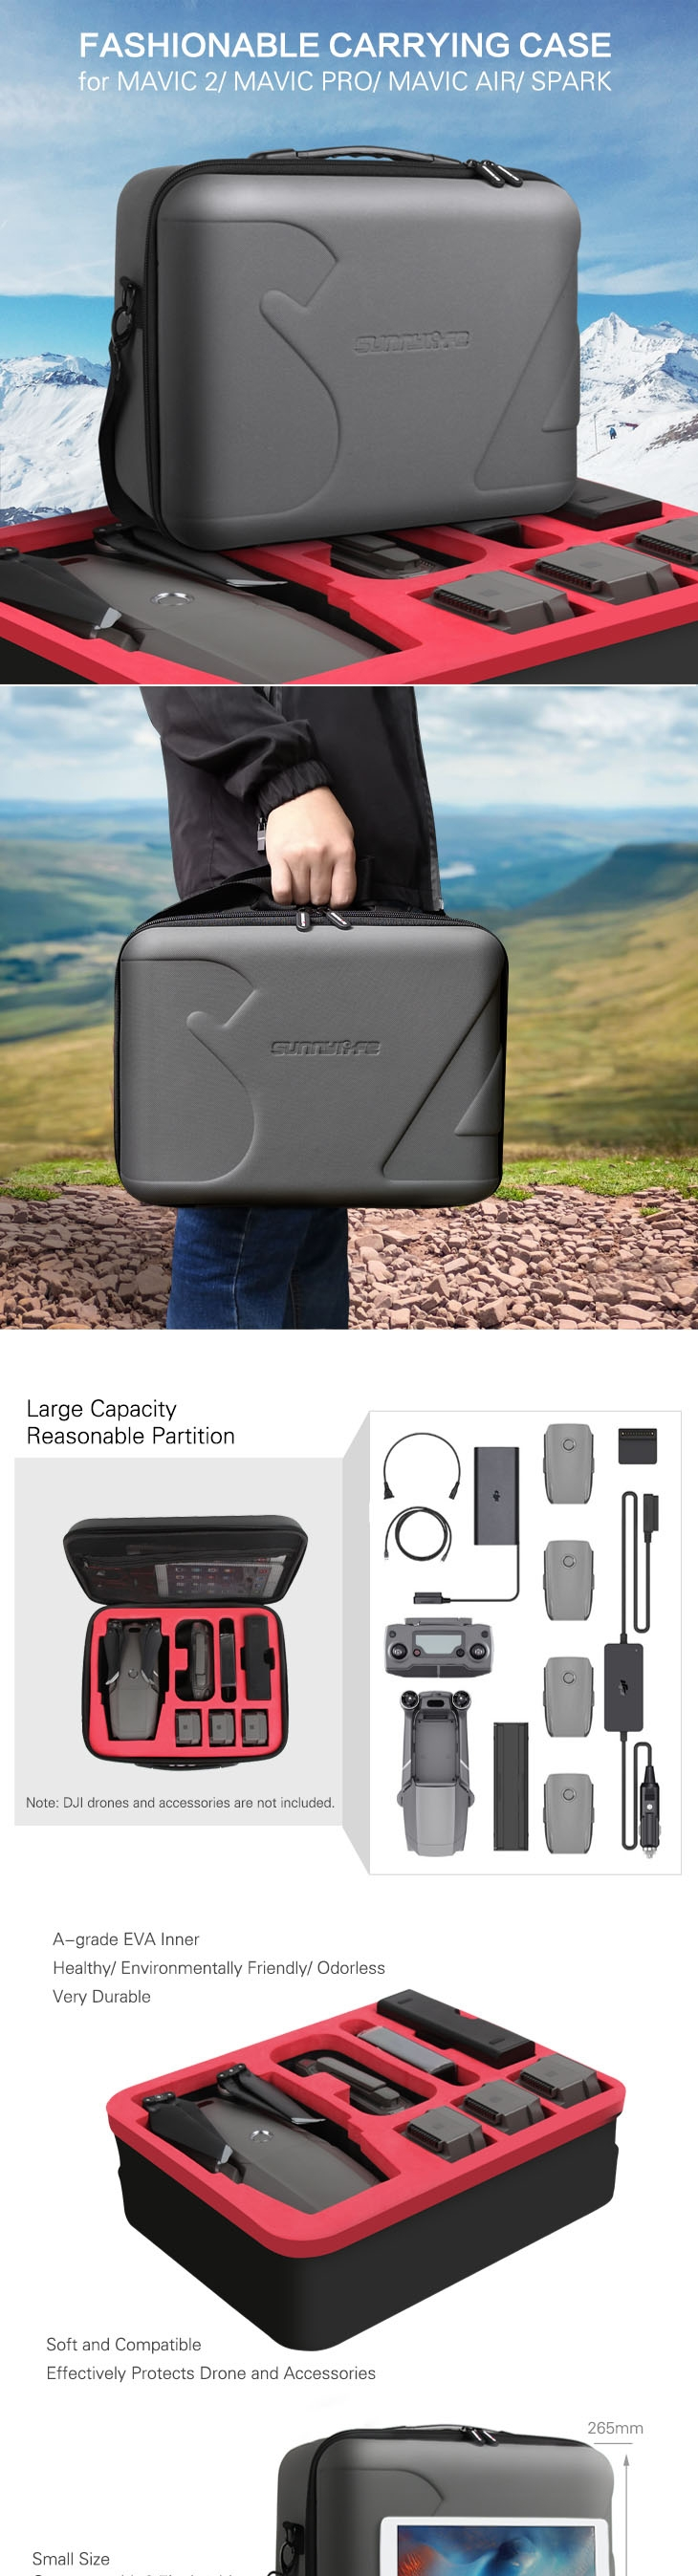 Sunnylife Protective Storage Bag Shoulder Bag Carrying Box Case for DJI Mavic 2/ MAVIC PRO/ MAVIC AIR/ SPARK Drone